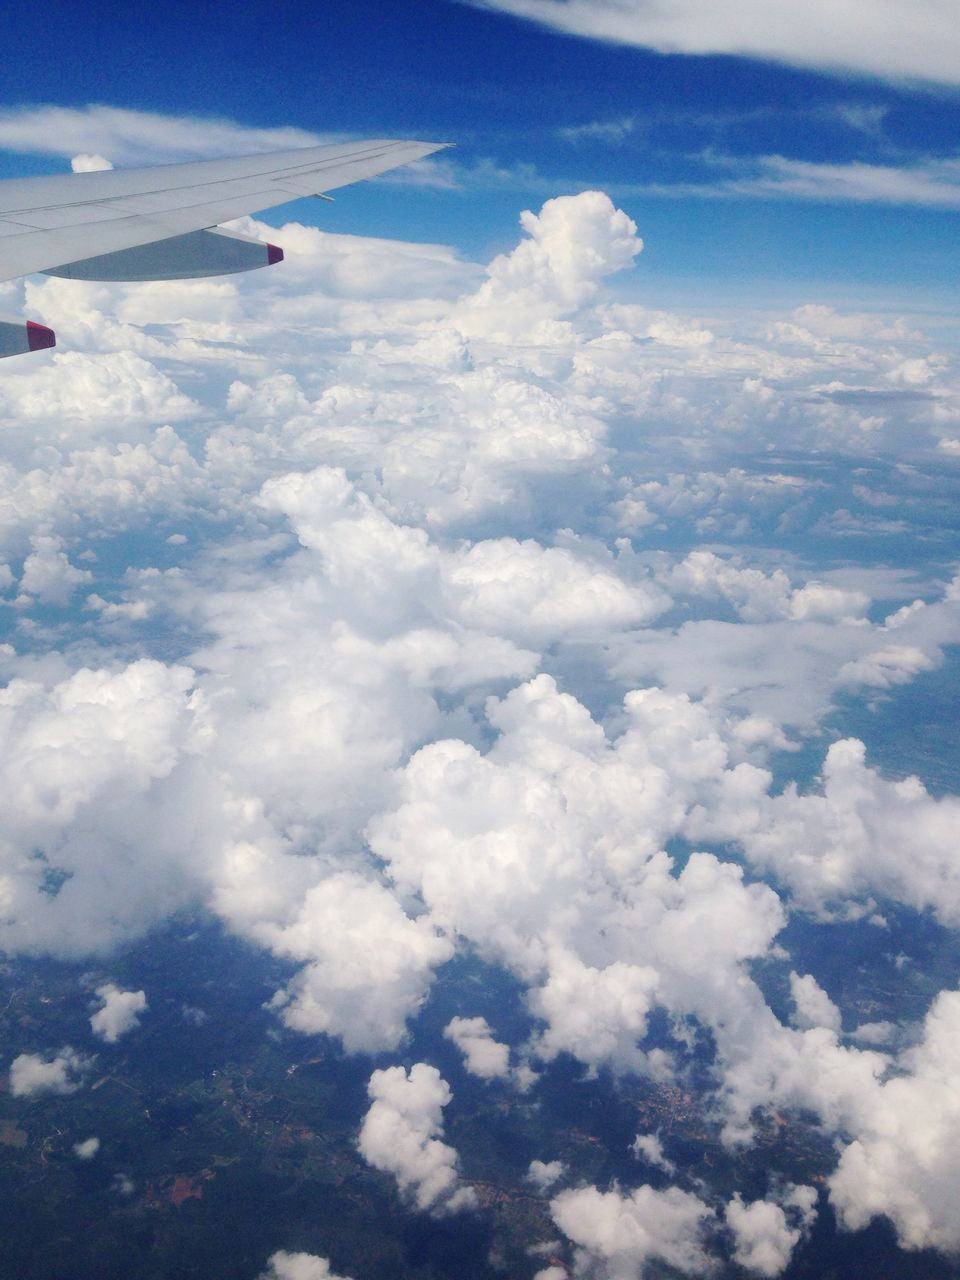 cloud - sky, sky, airplane, beauty in nature, nature, journey, transportation, aerial view, flying, airplane wing, day, no people, scenics, air vehicle, outdoors